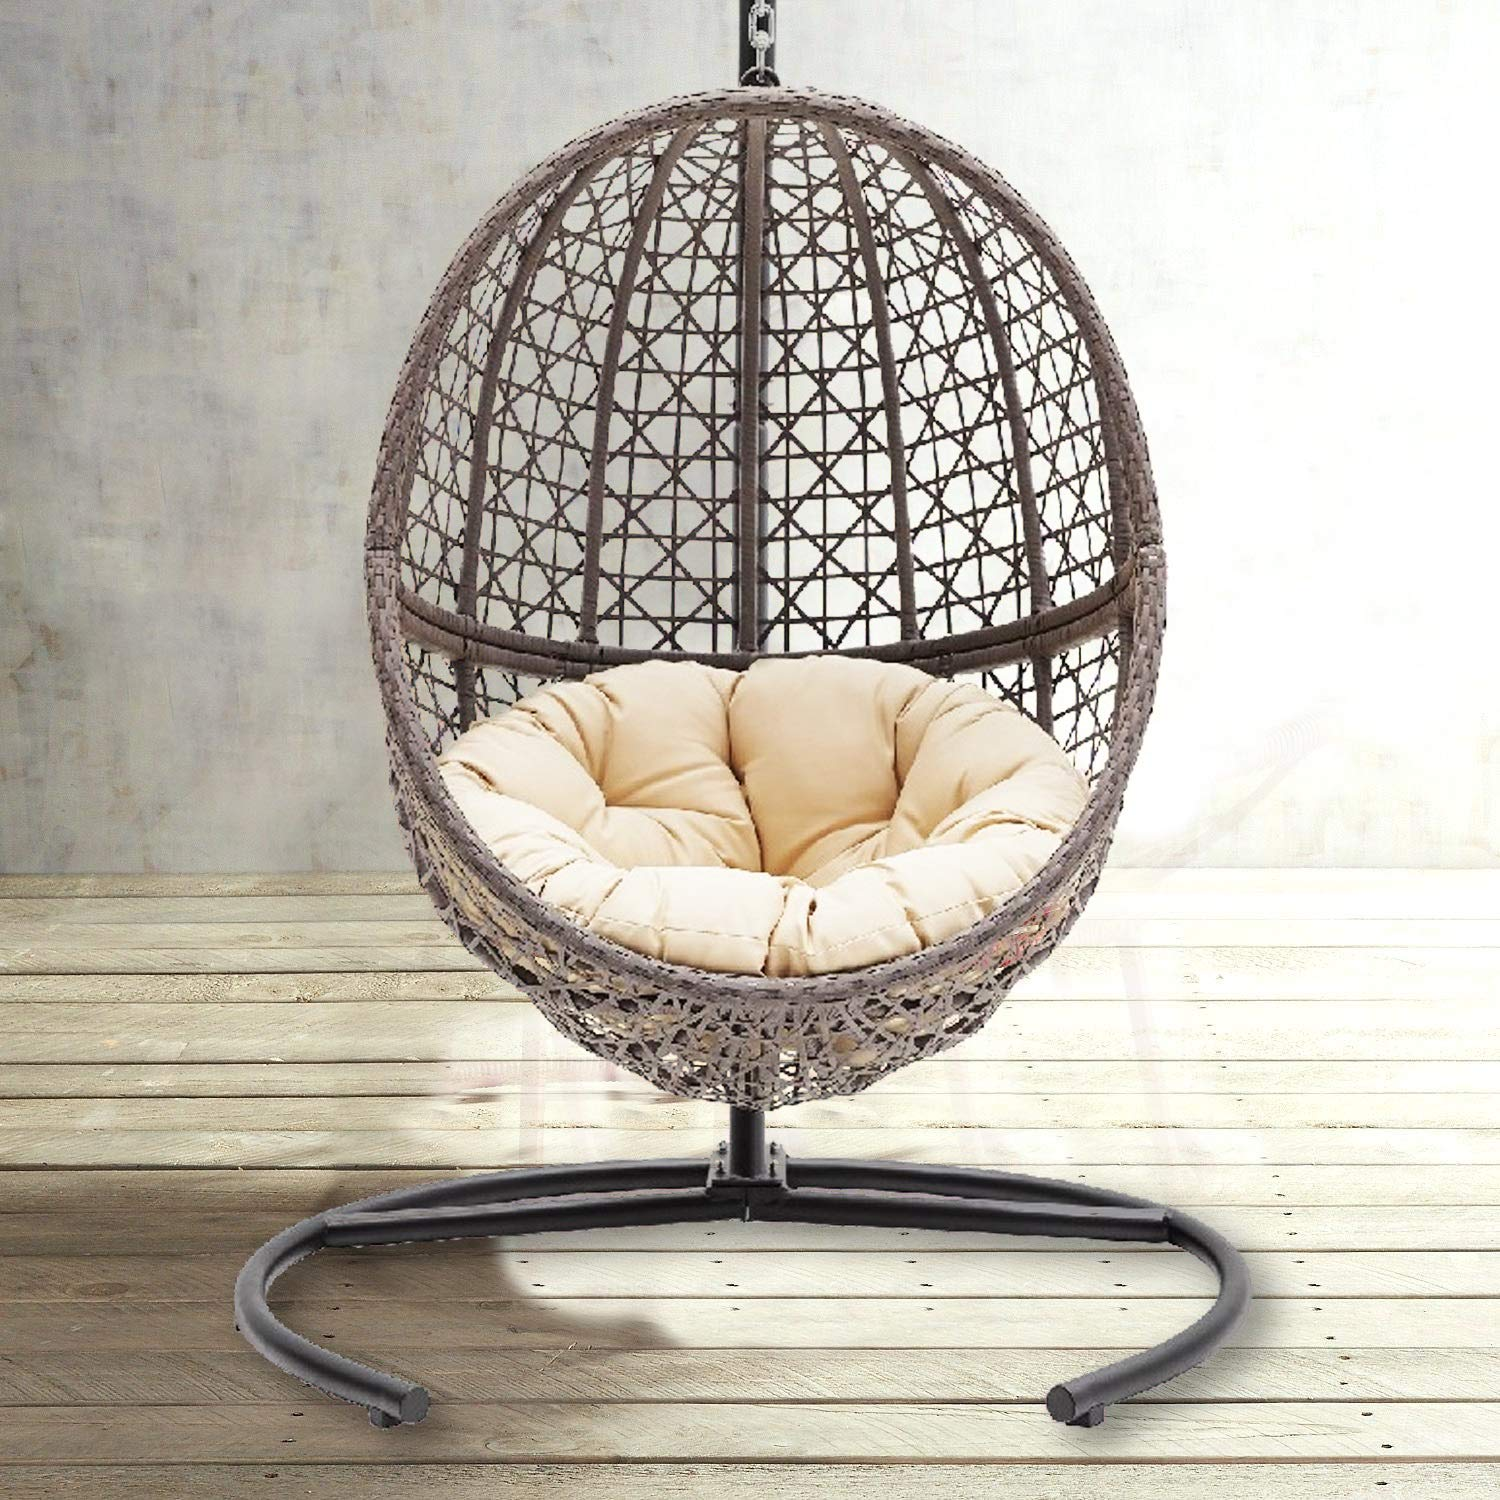 ikea-hanging-egg-chair-with-stand-alternative